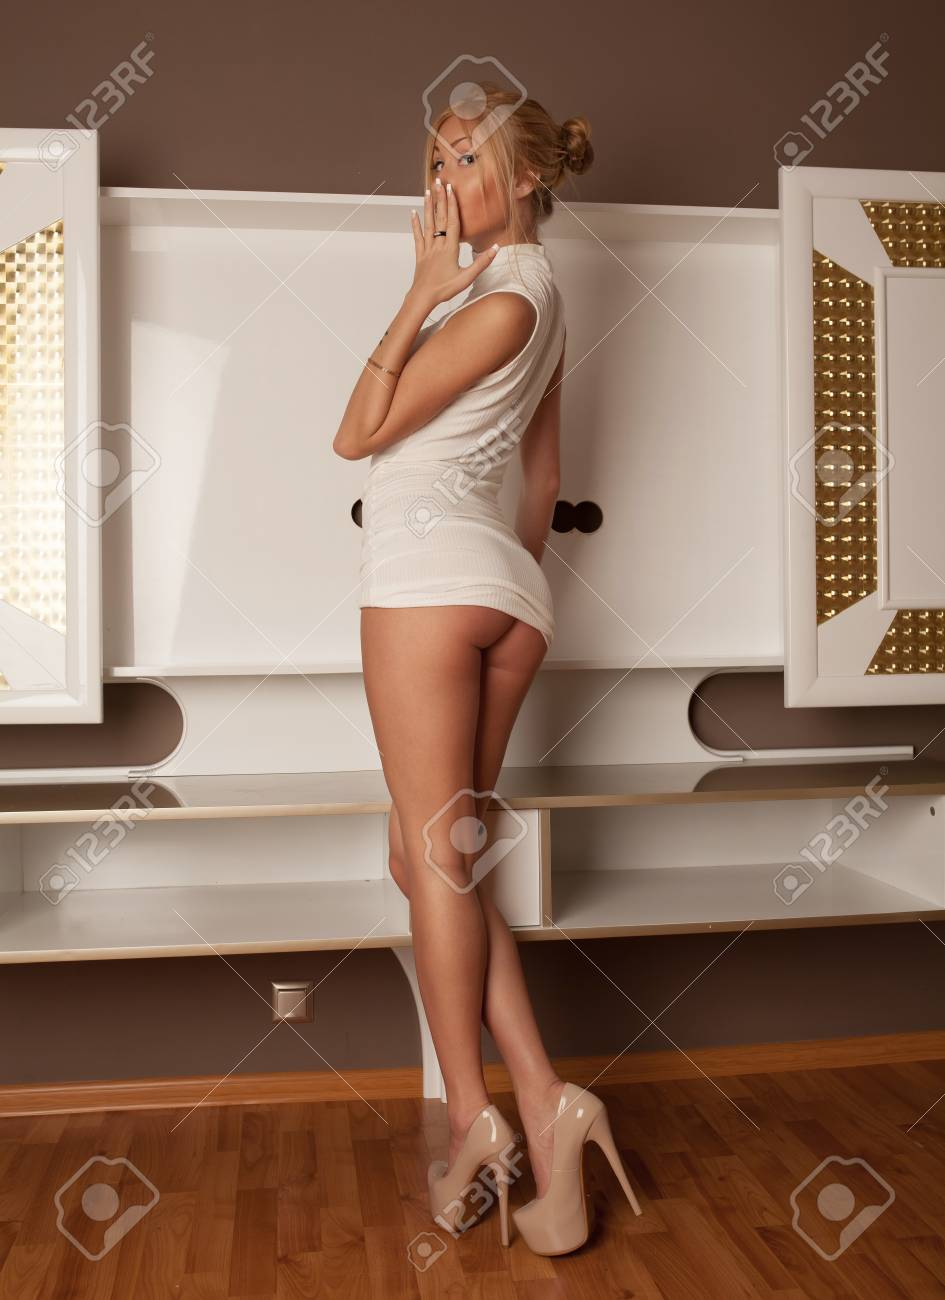 3857f863b94b Sexy blonde woman in short white dress. hot lady in her room. Stock Photo